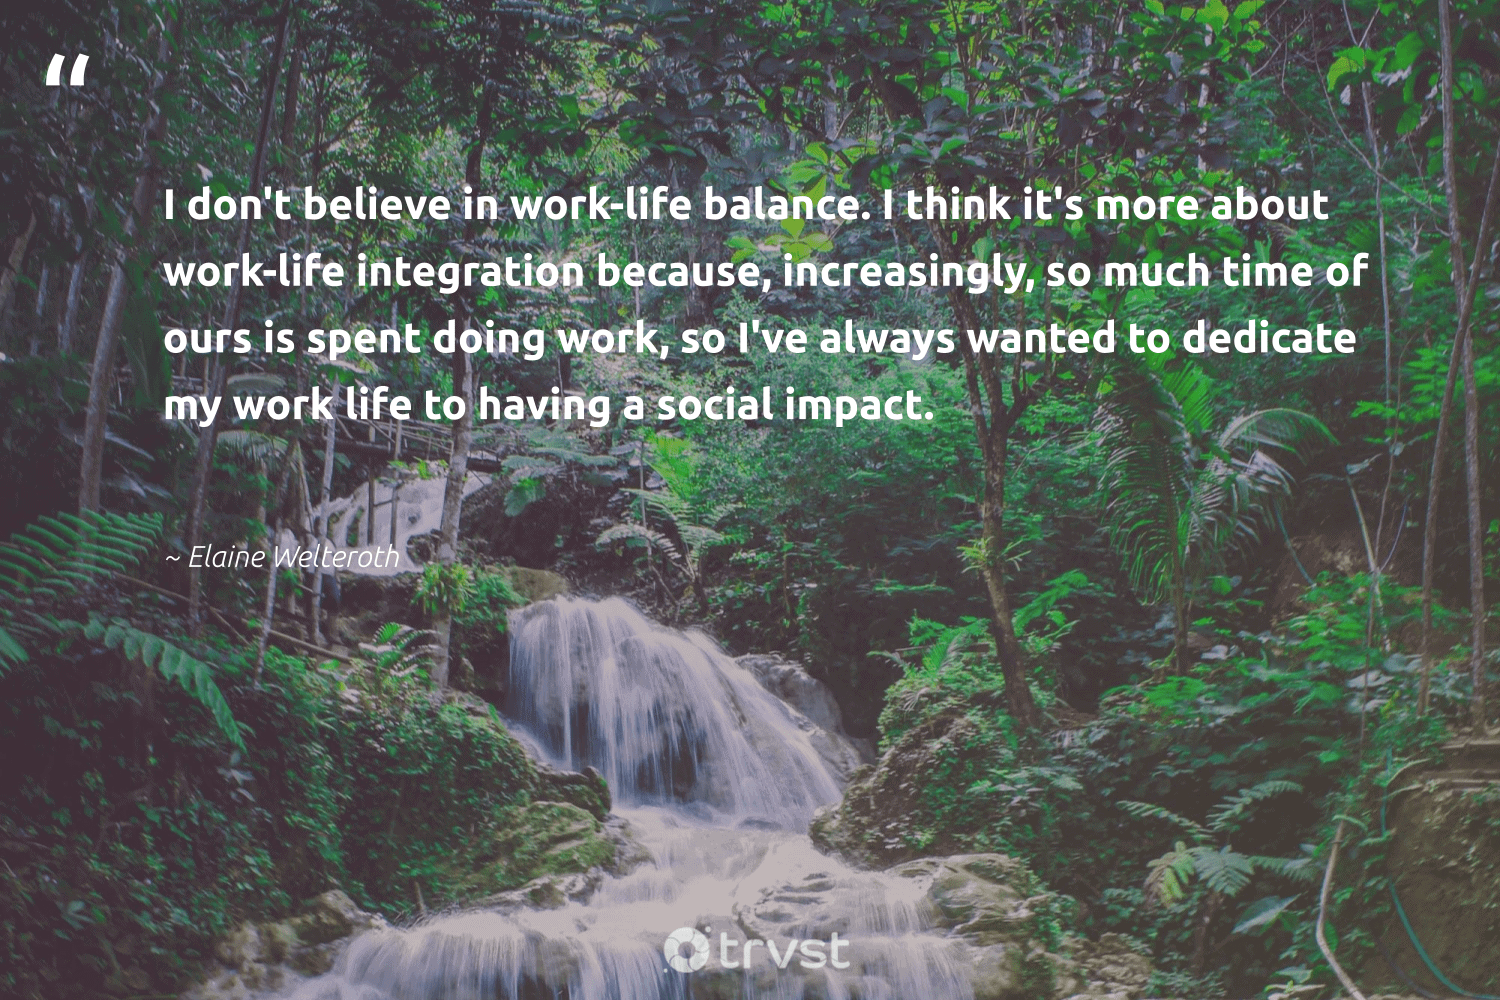 """""""I don't believe in work-life balance. I think it's more about work-life integration because, increasingly, so much time of ours is spent doing work, so I've always wanted to dedicate my work life to having a social impact.""""  - Elaine Welteroth #trvst #quotes #impact #socialimpact #balance #worklifebalance #worklife #futureofwork #socialenterprise #socialchange #nevergiveup #planetearthfirst"""